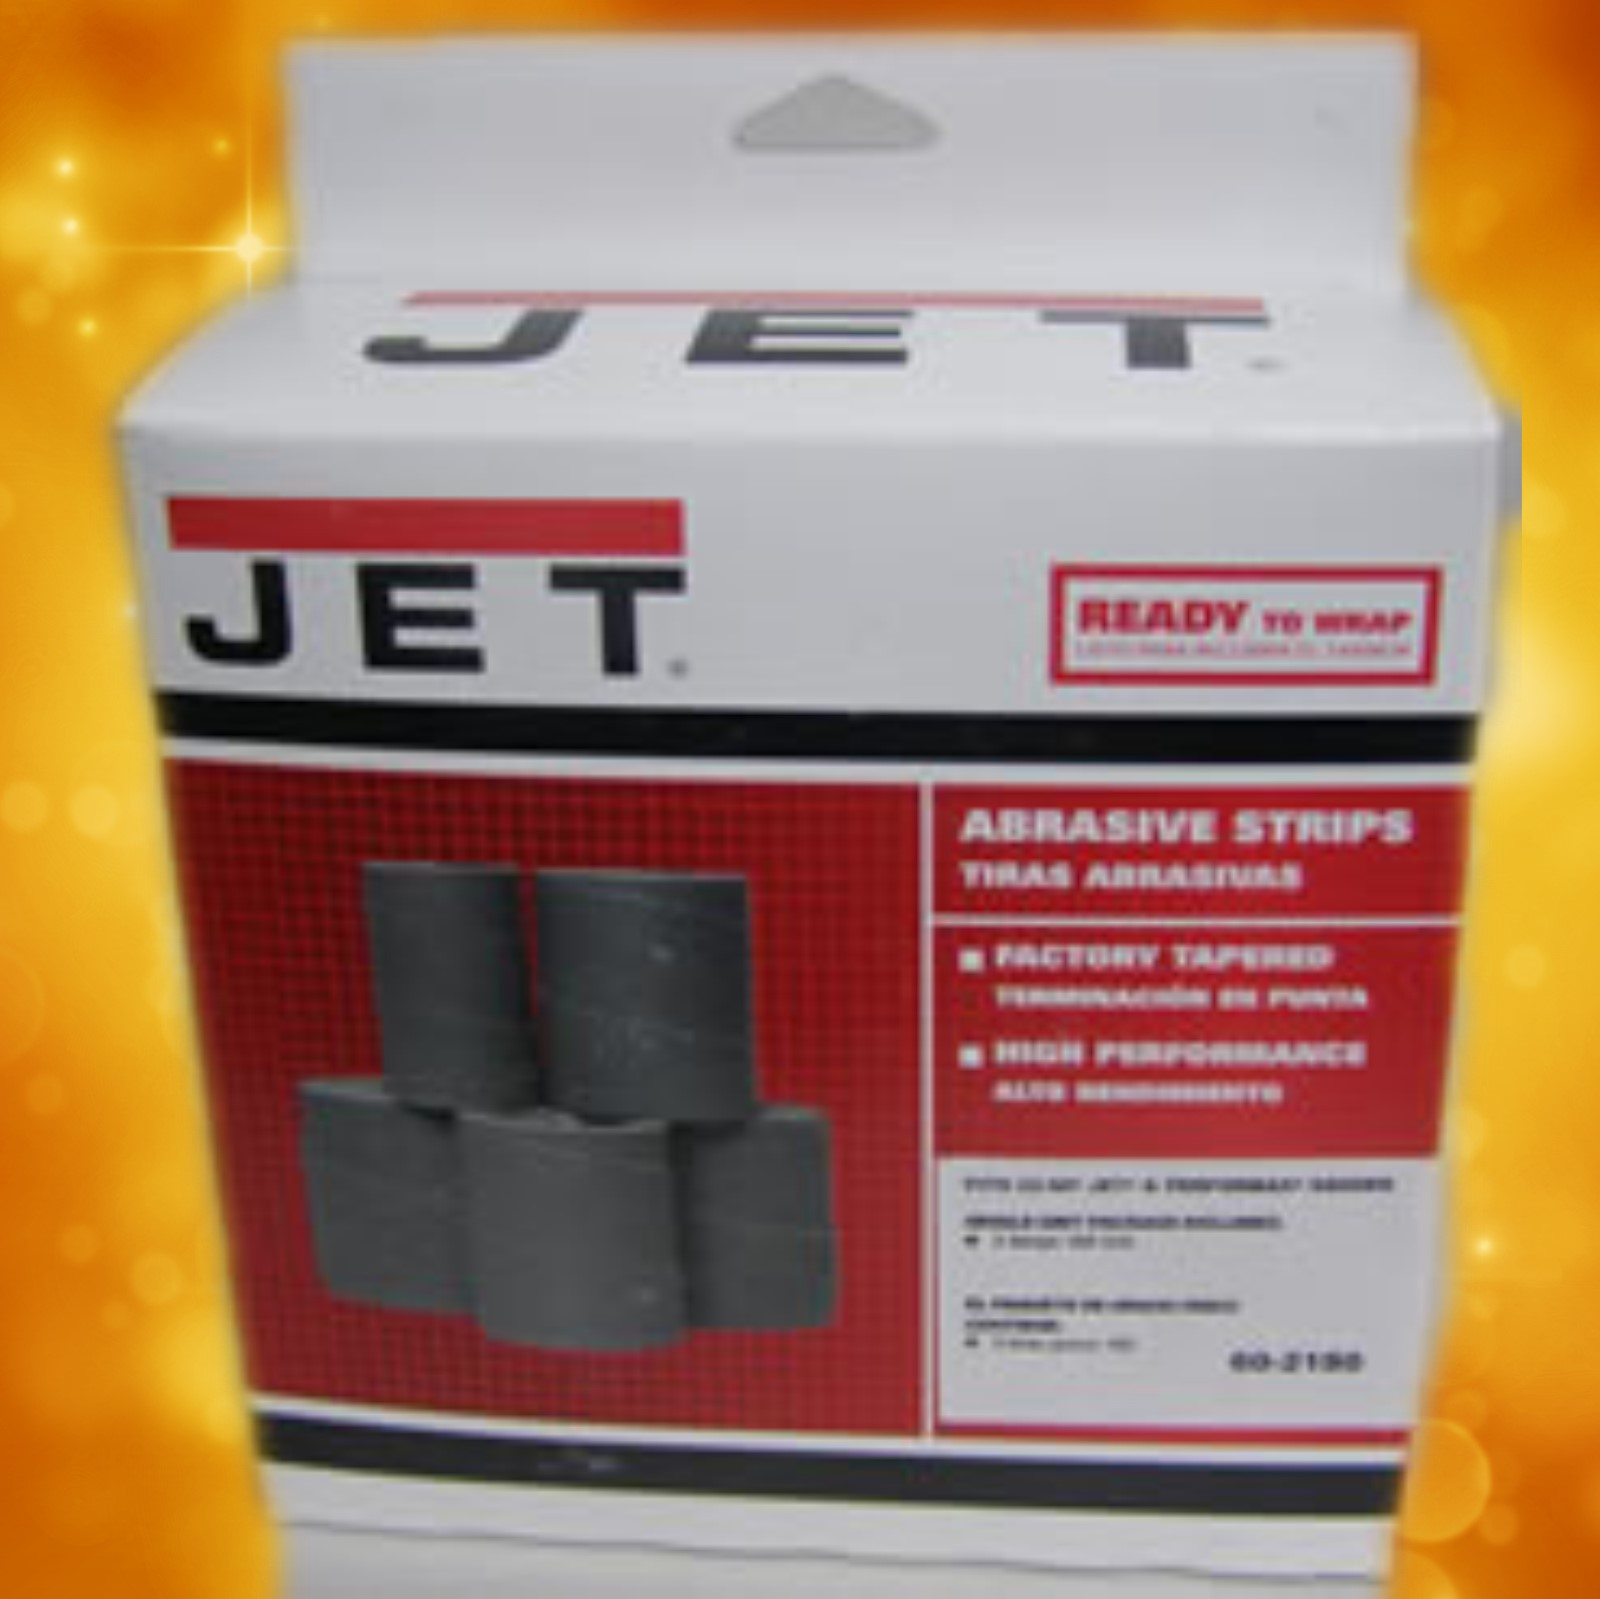 Jet Sand Paper 60-2180 Ready-To-Wrap Abrasives, 180 grit, 3-wraps in Box for 22-44 60-2180